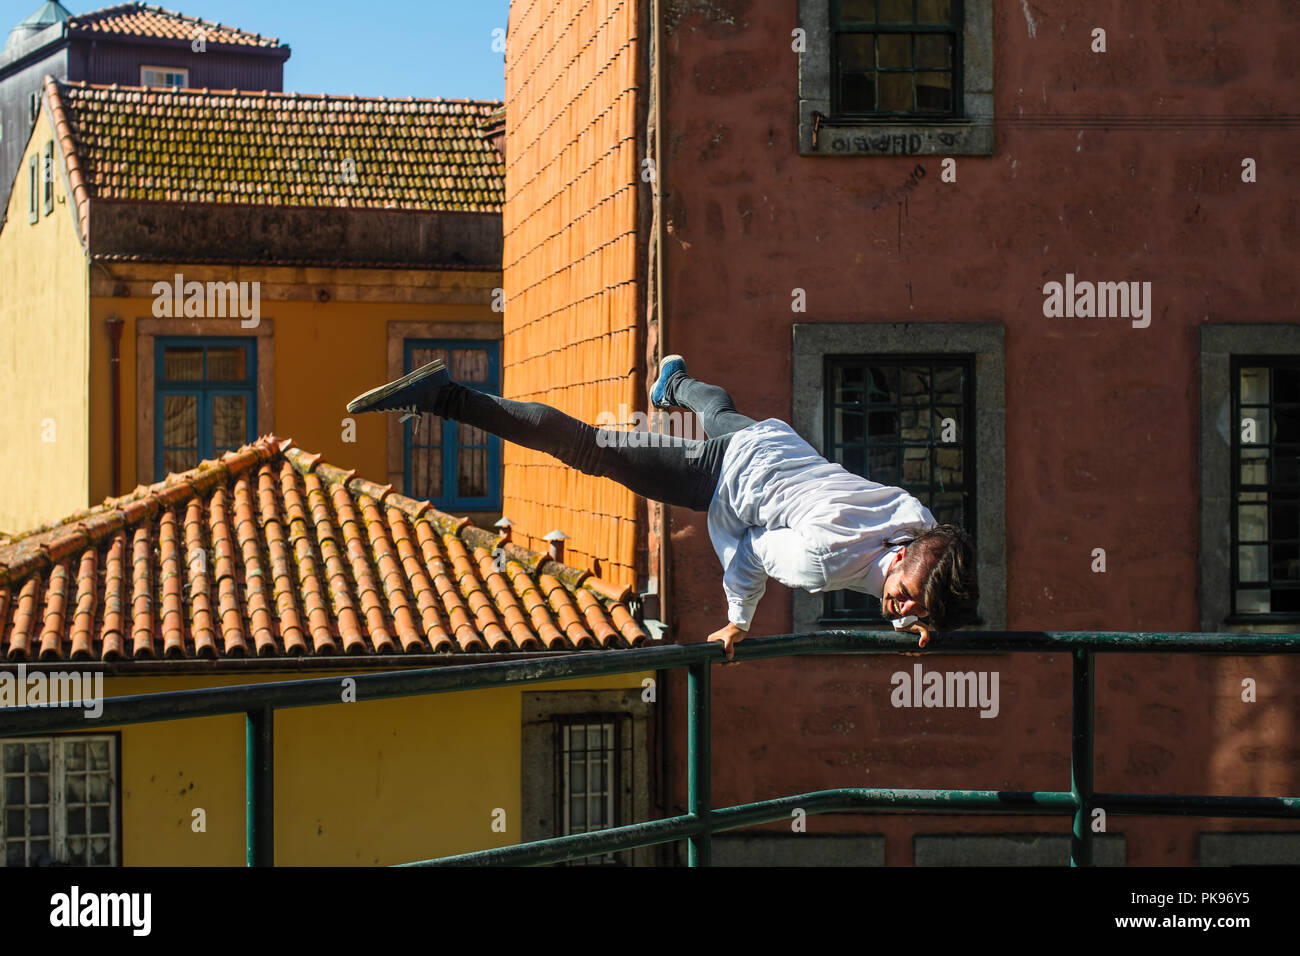 Young man engaged in parkour in the old city. - Stock Image